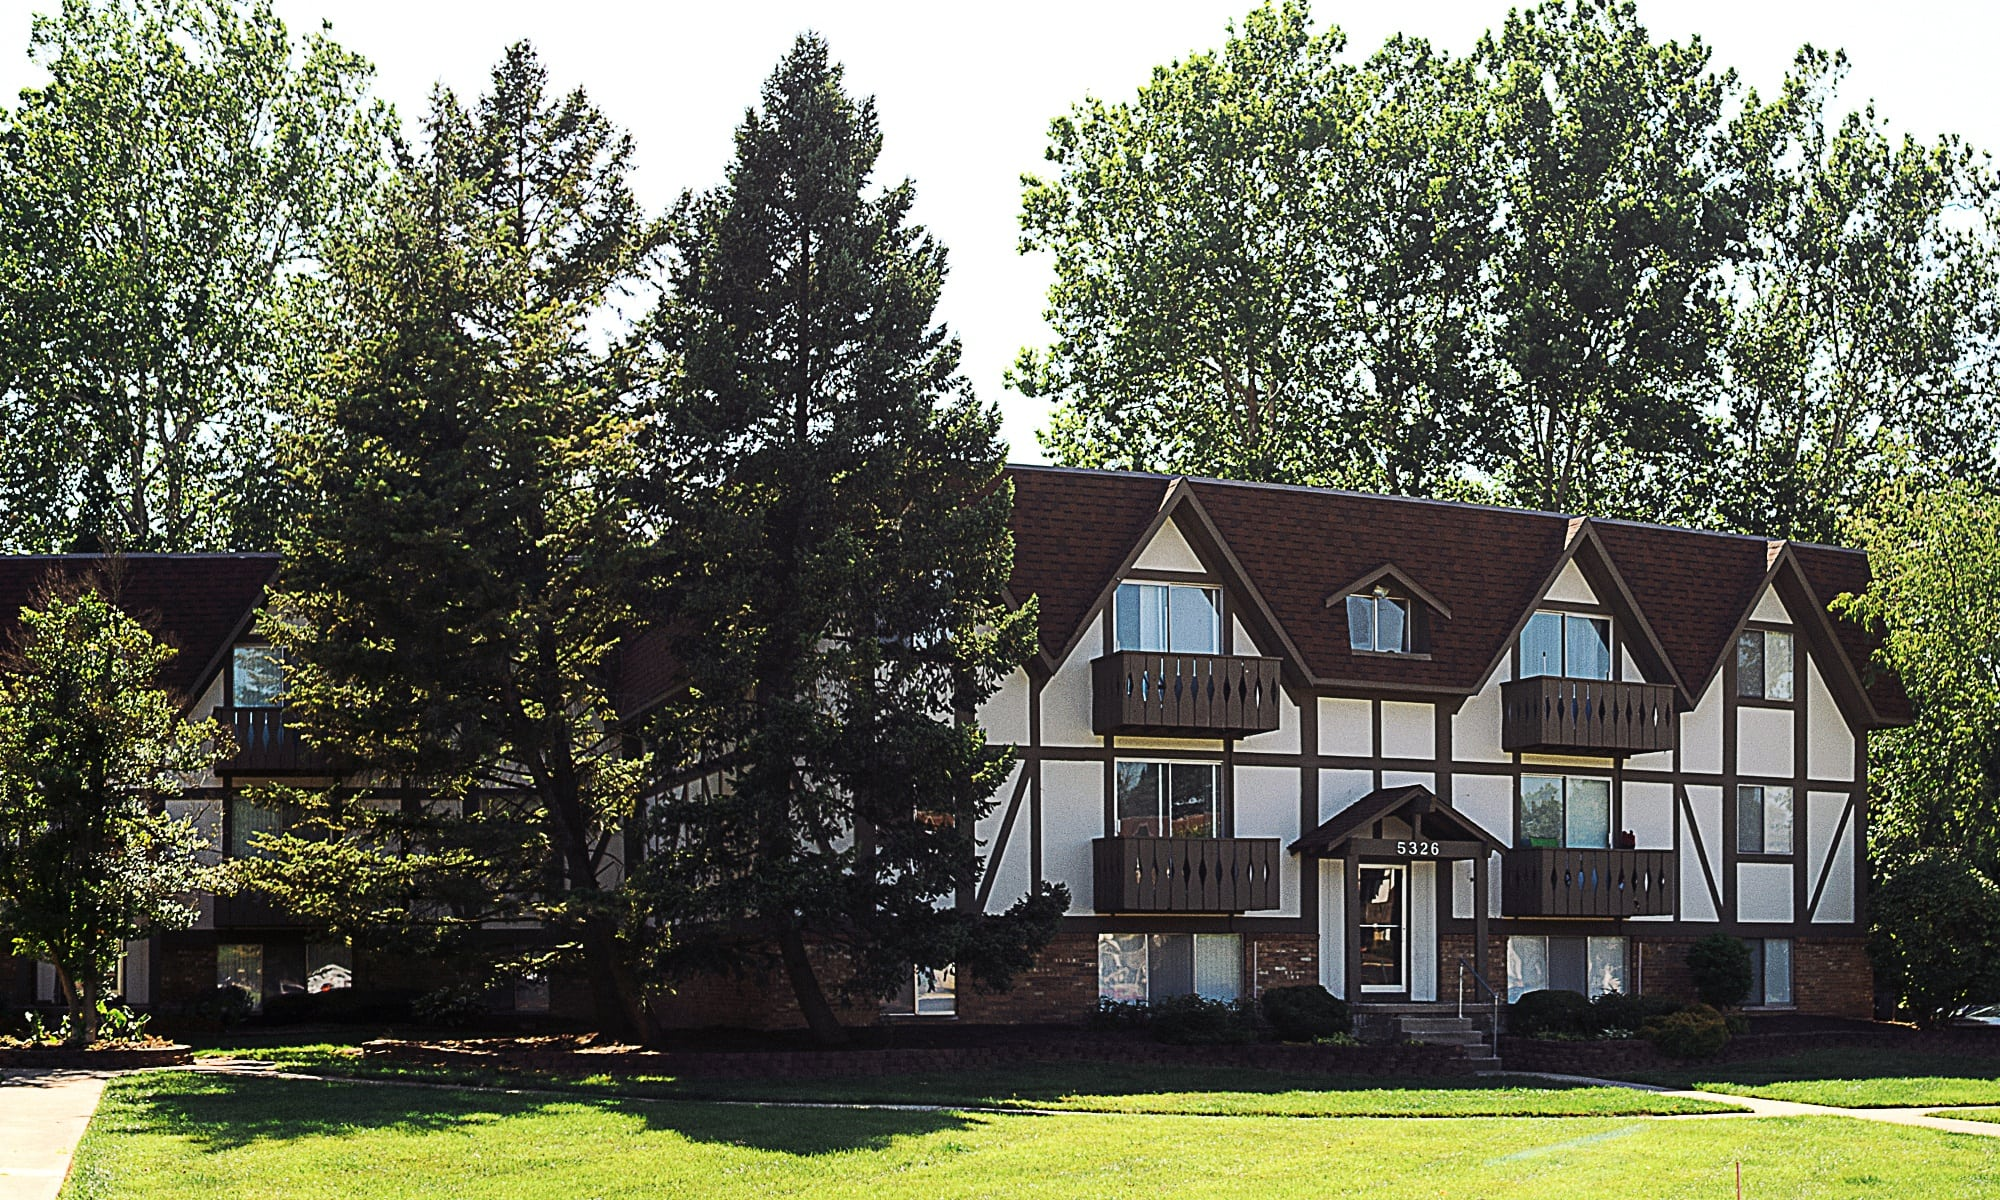 Apartments in Fairfield, OH